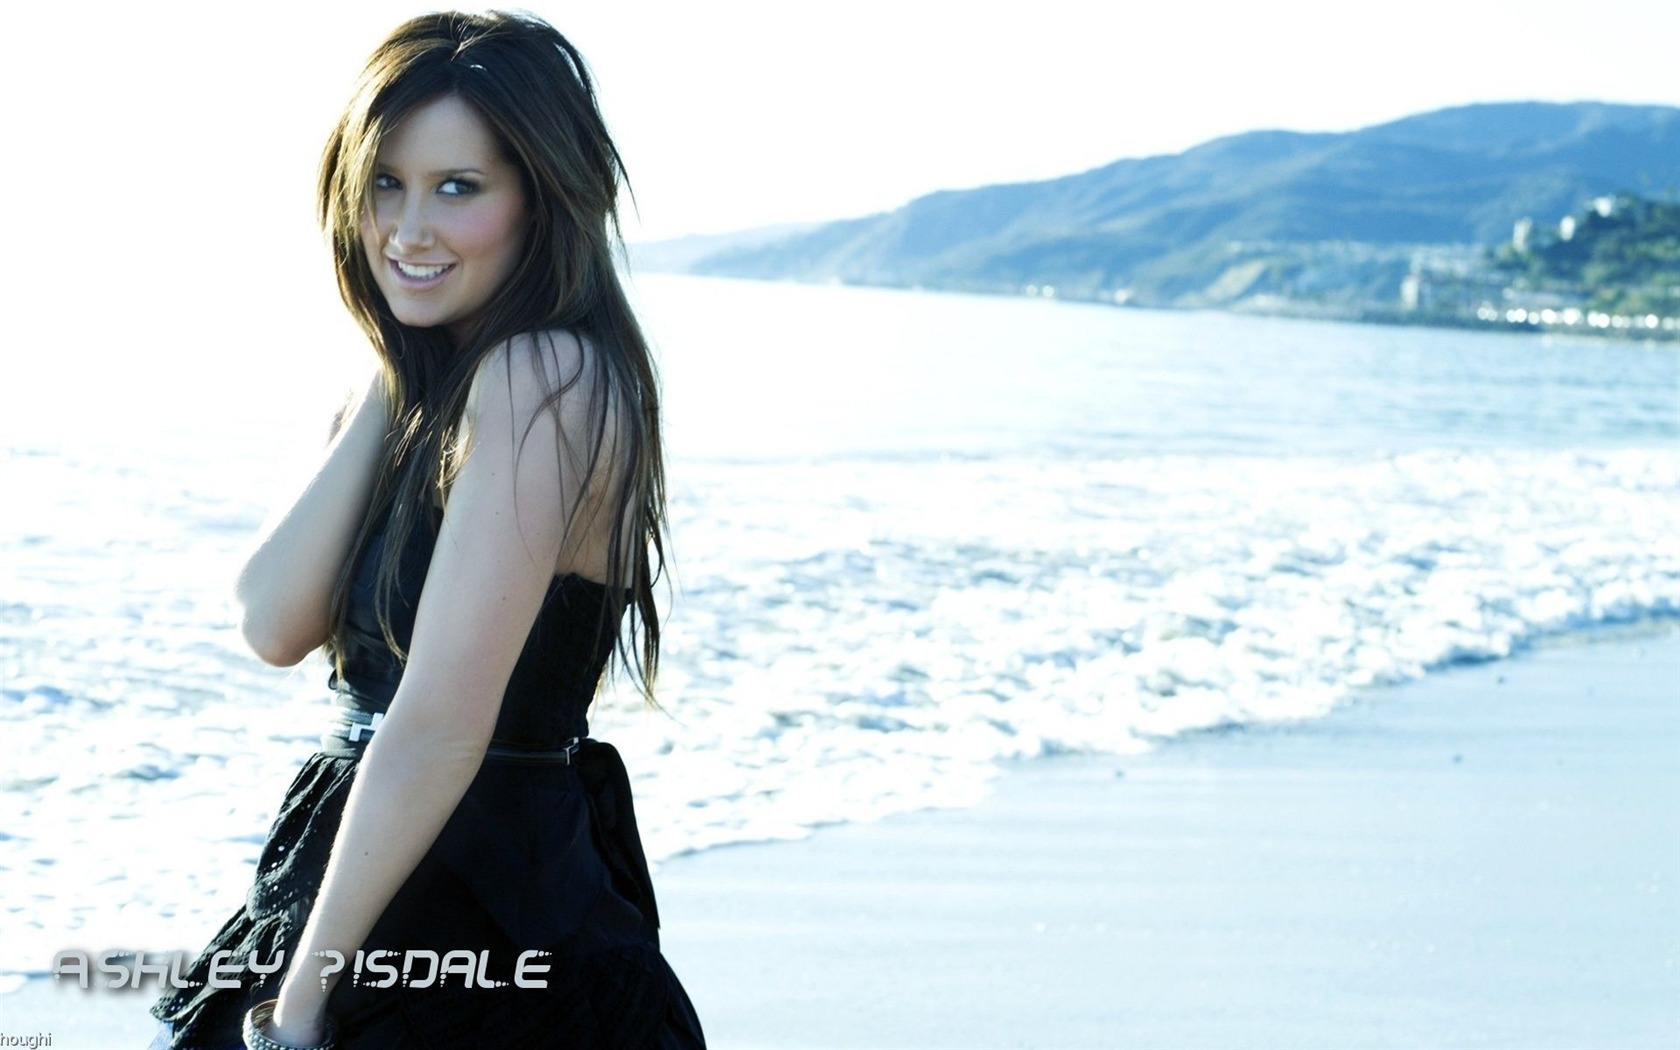 Ashley Tisdale #027 - 1680x1050 Wallpapers Pictures Photos Images